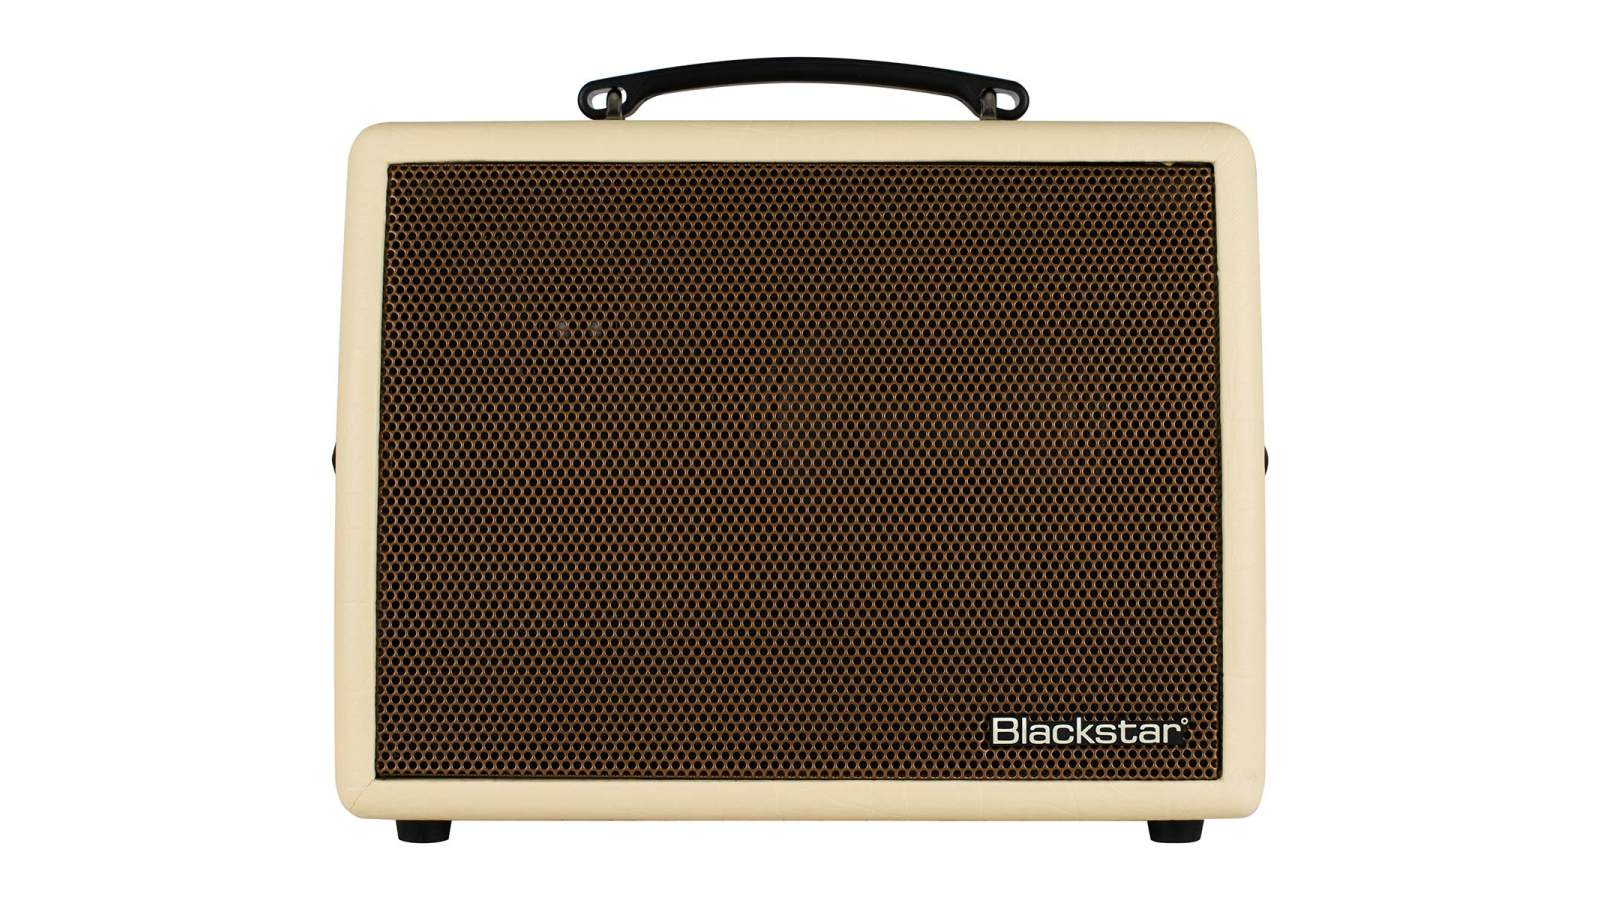 Blackstar Sonnet 60 Blond